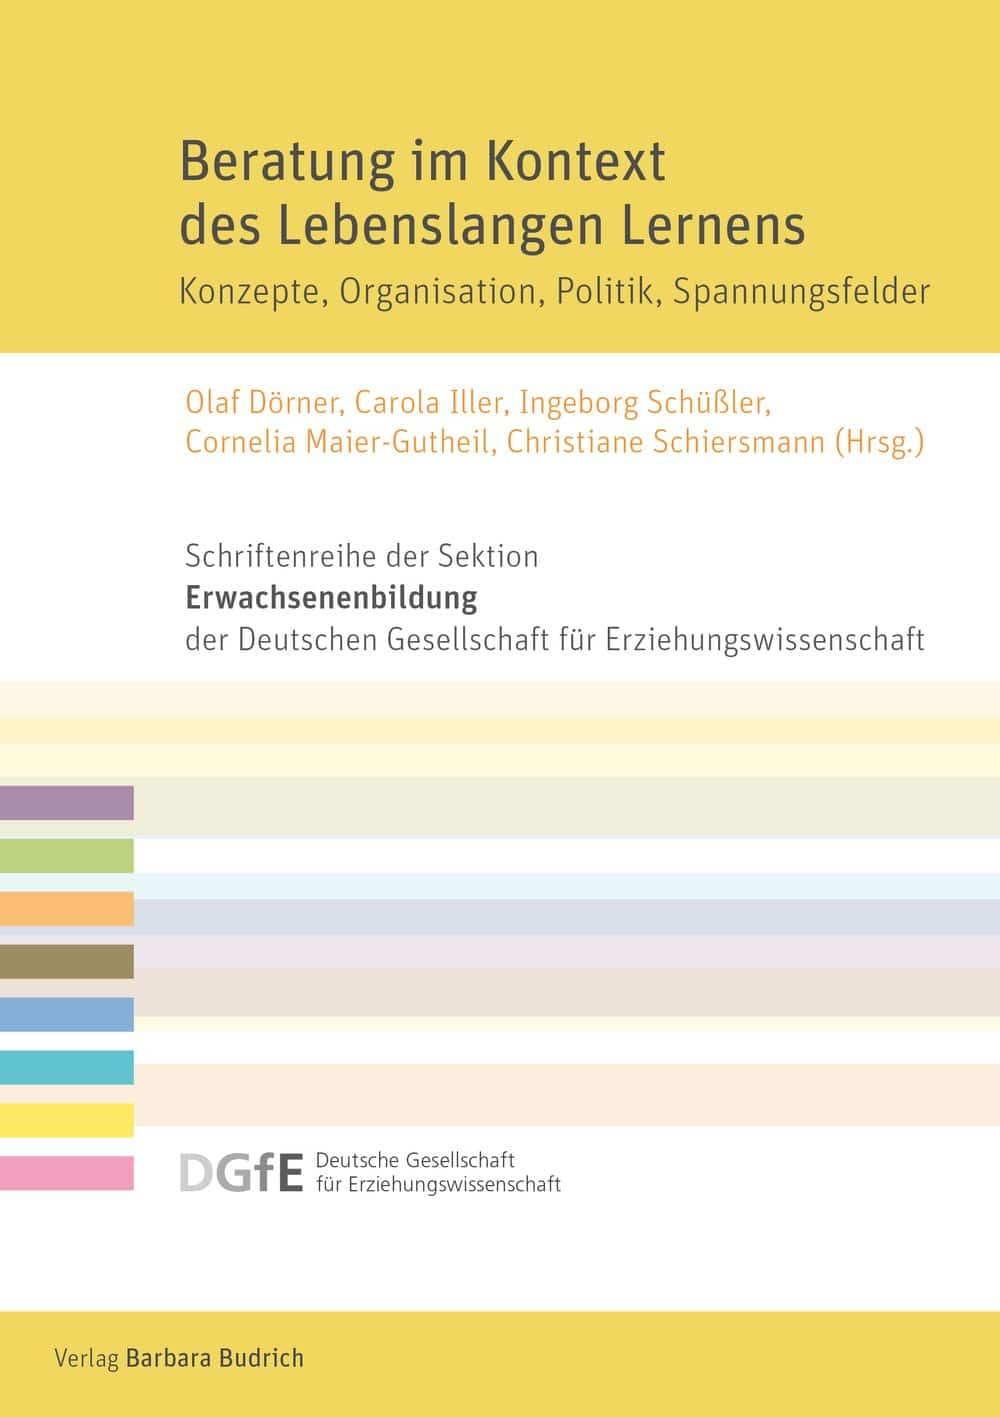 download Glorifying the Simple Life: Analyses of Socio Psychological Constructs in the Context of Reality